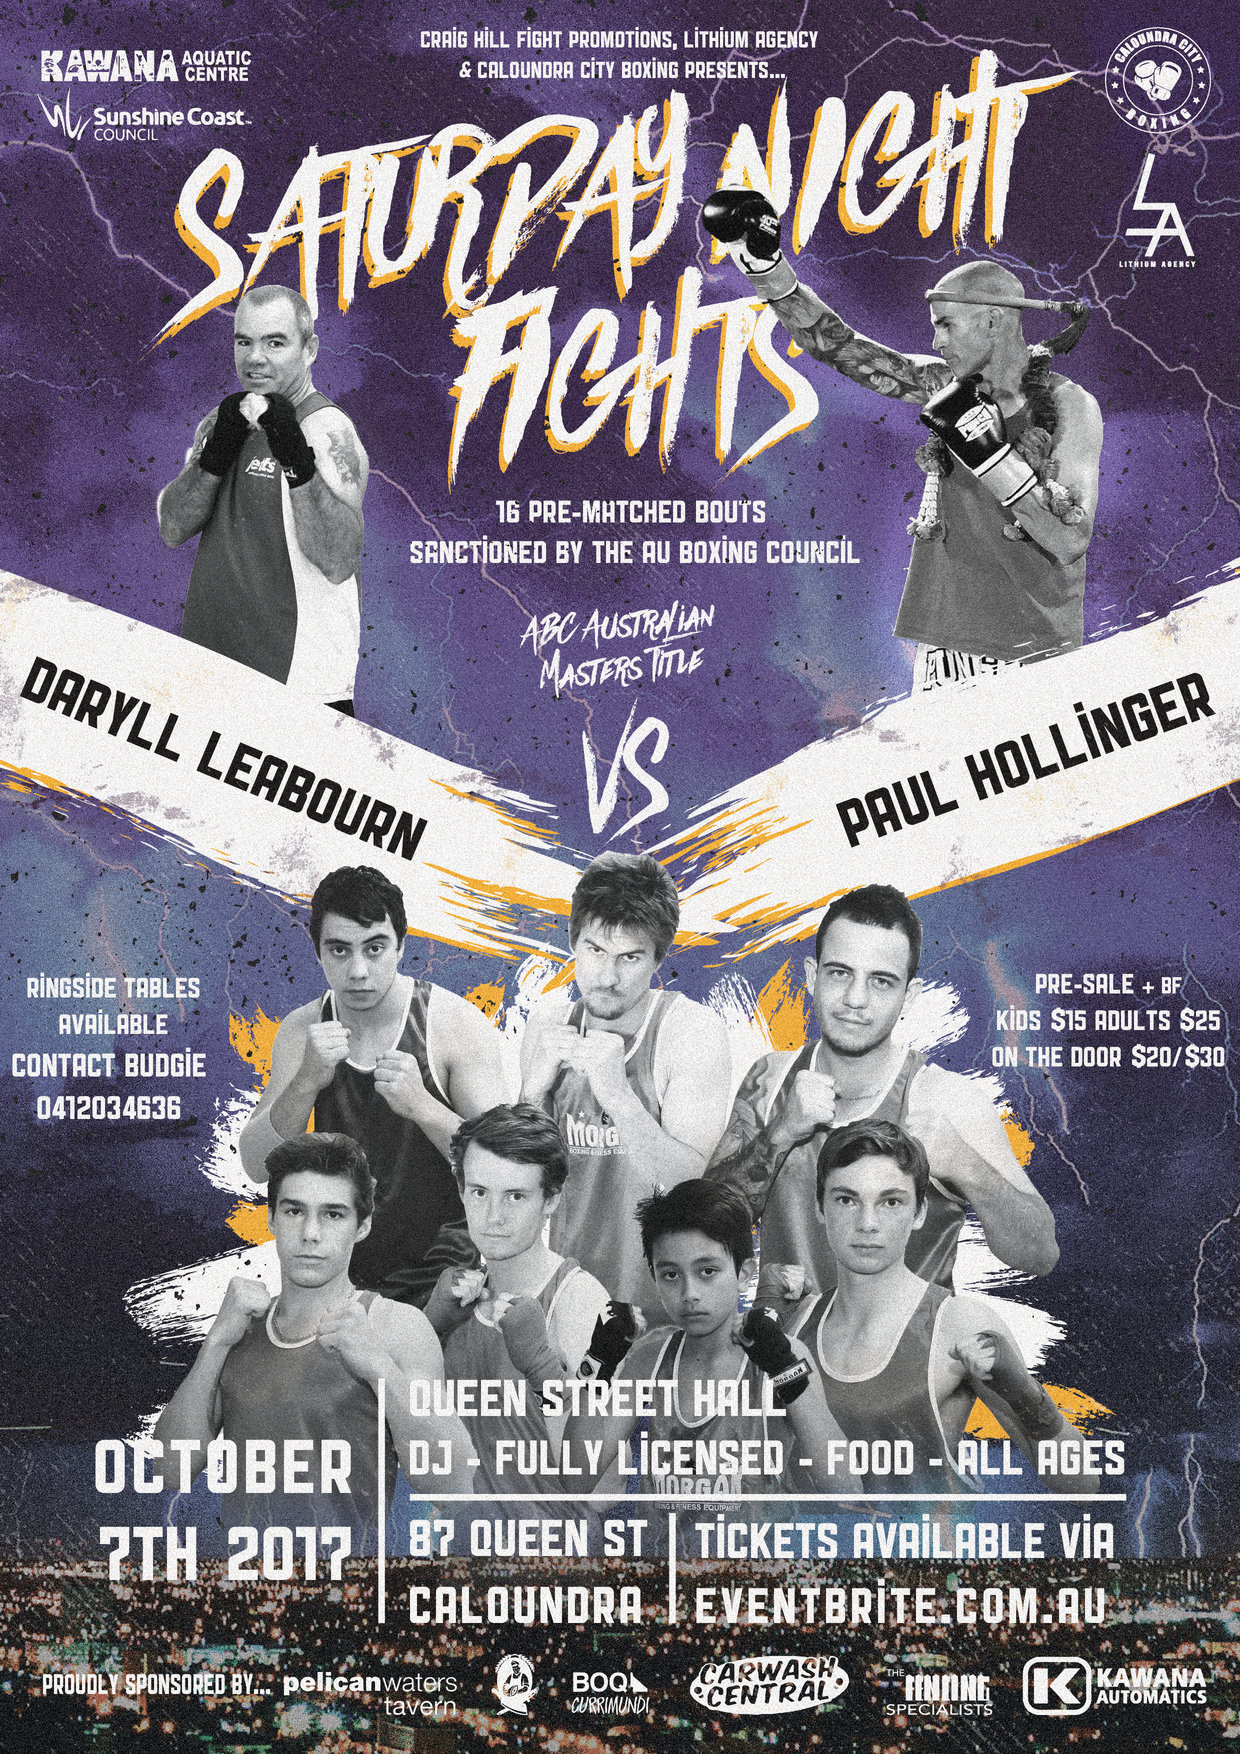 Saturday Night Fights - recent event October 7 - 16 prematched bouts - 3 x AU titles   more fight nights to come + more in the new year SC - BNE.